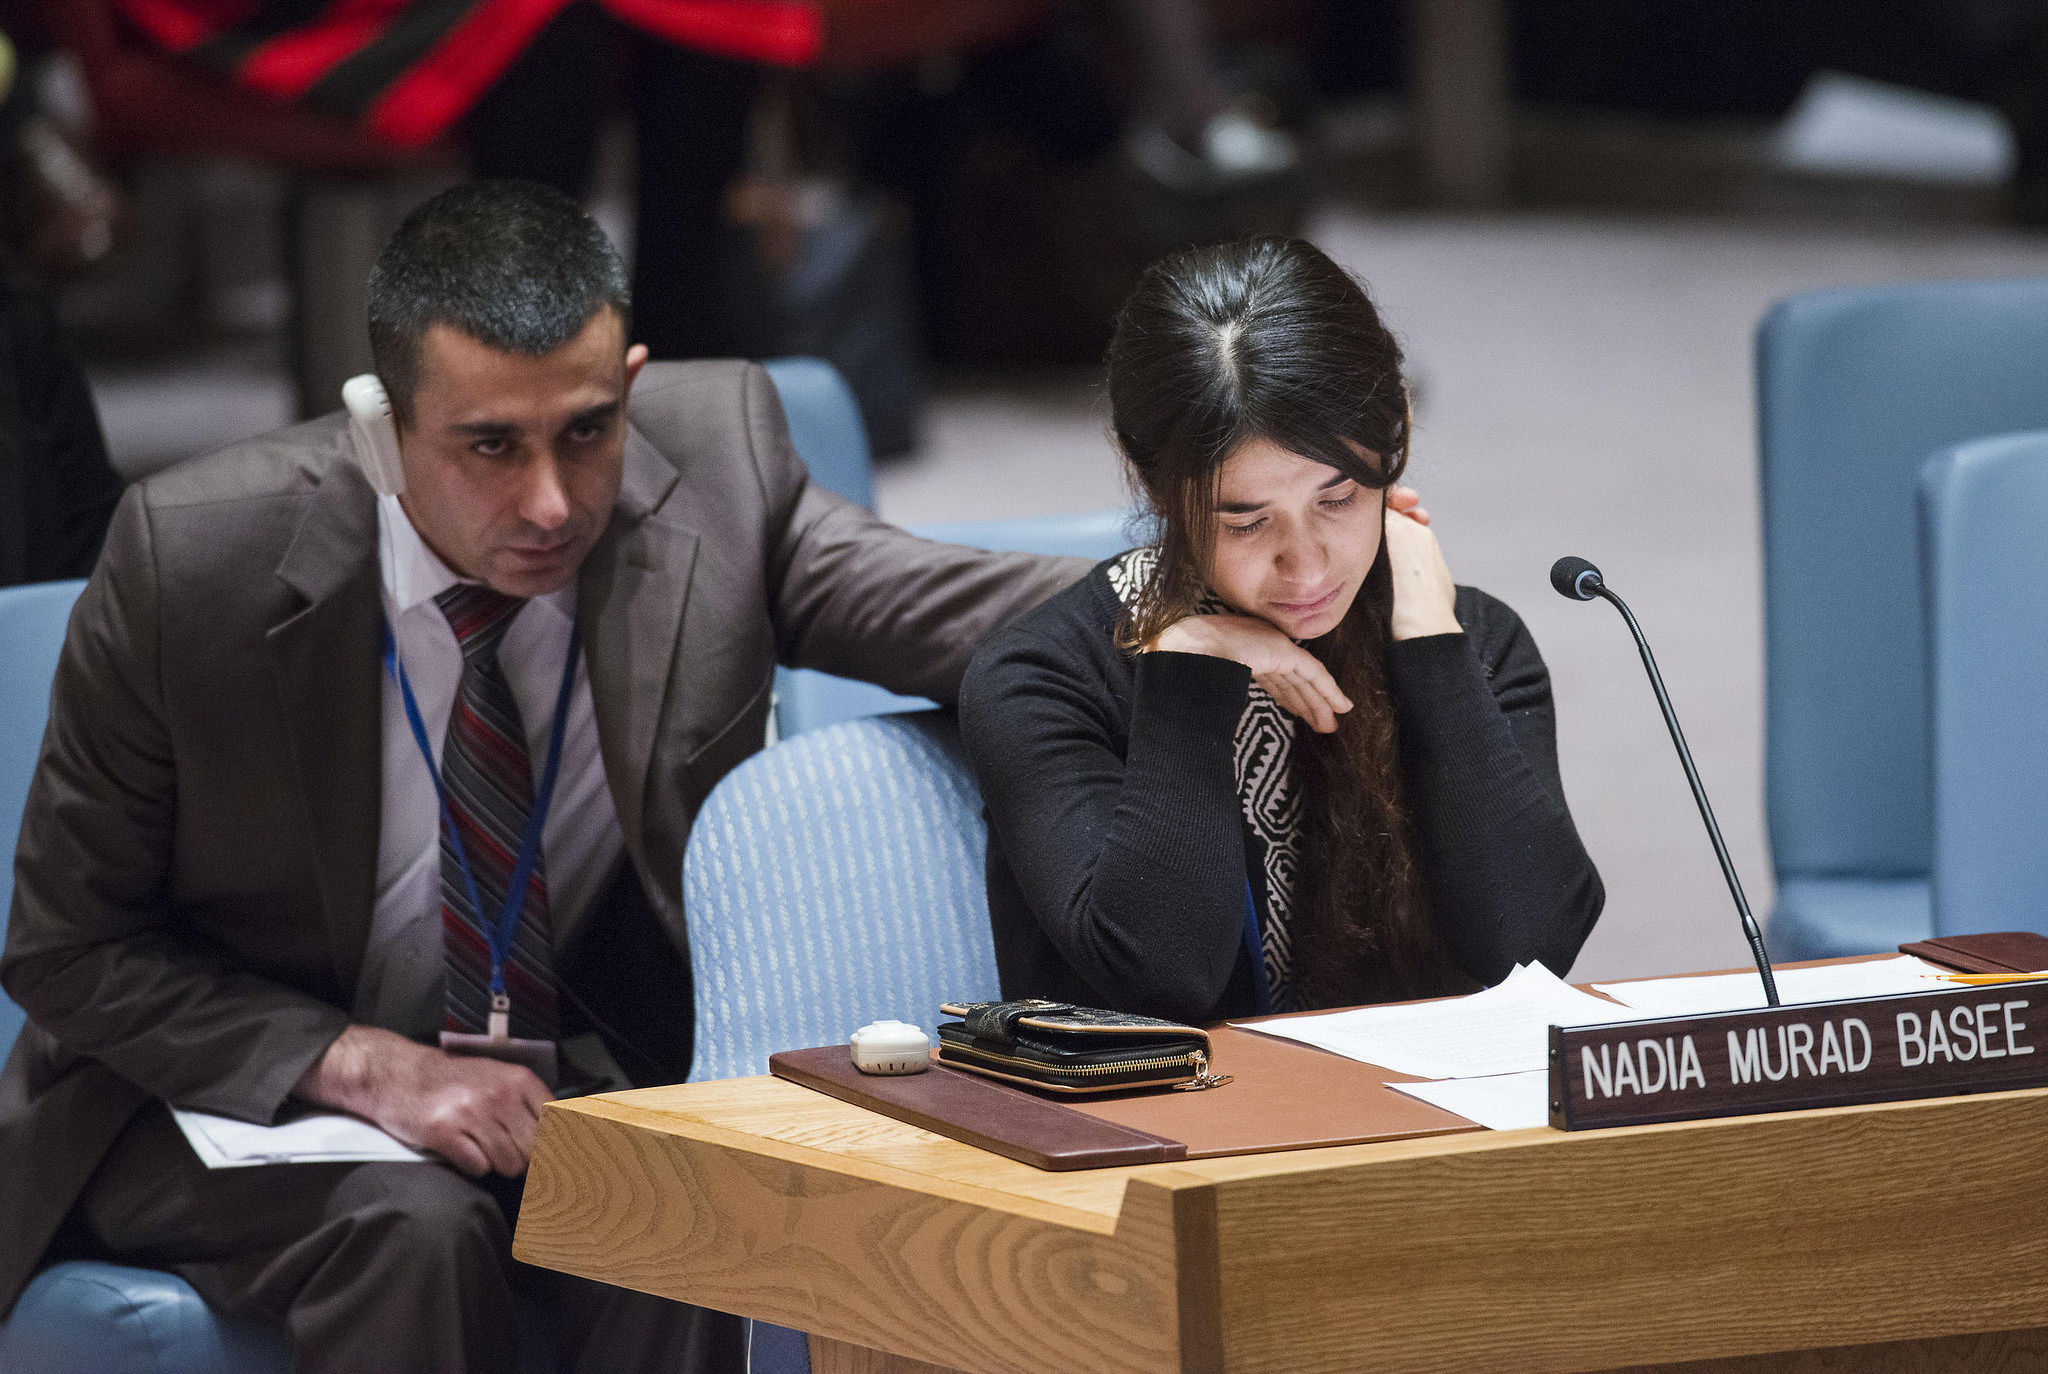 Nadia Murad nobel peace prize UN Security Council